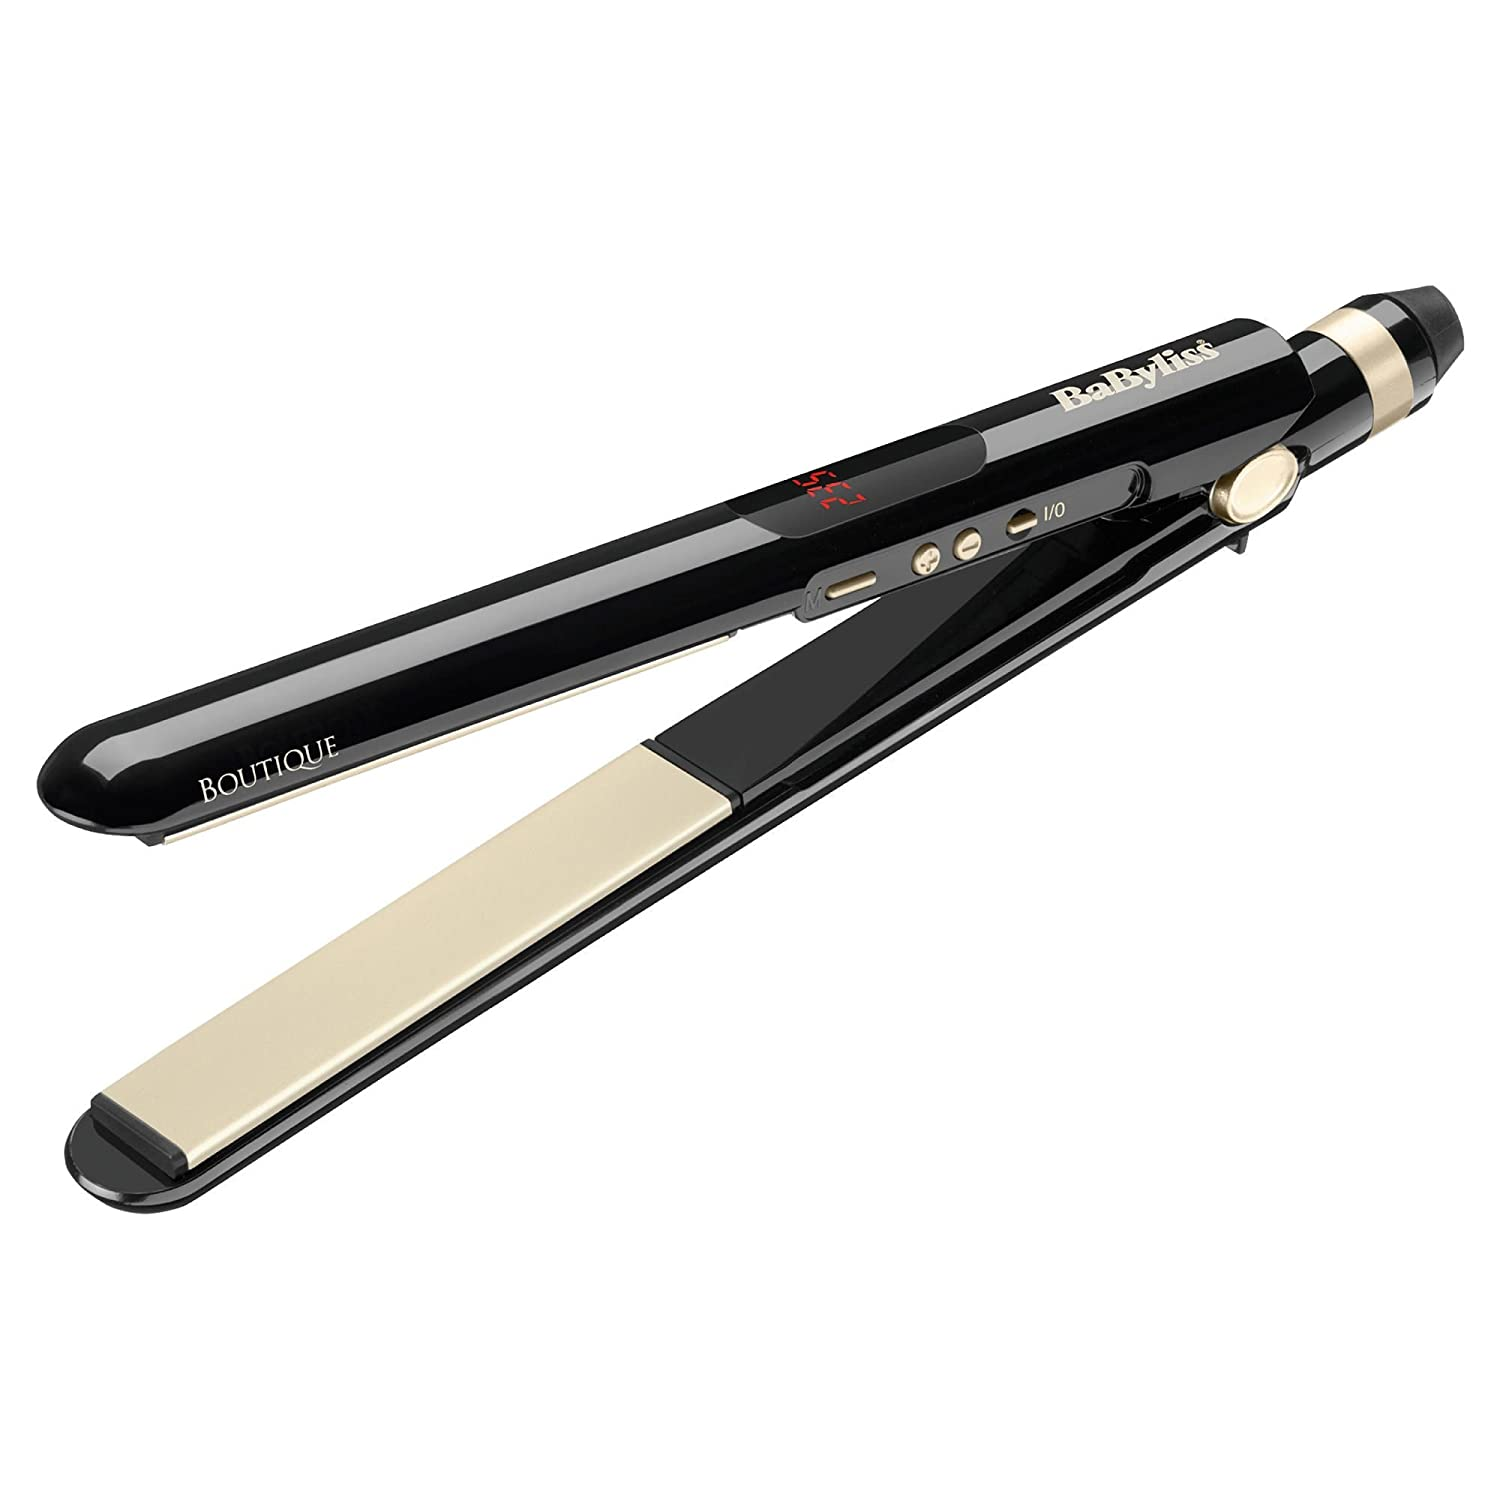 Babyliss Boutique Salon Control 235 Hair Striaghtners